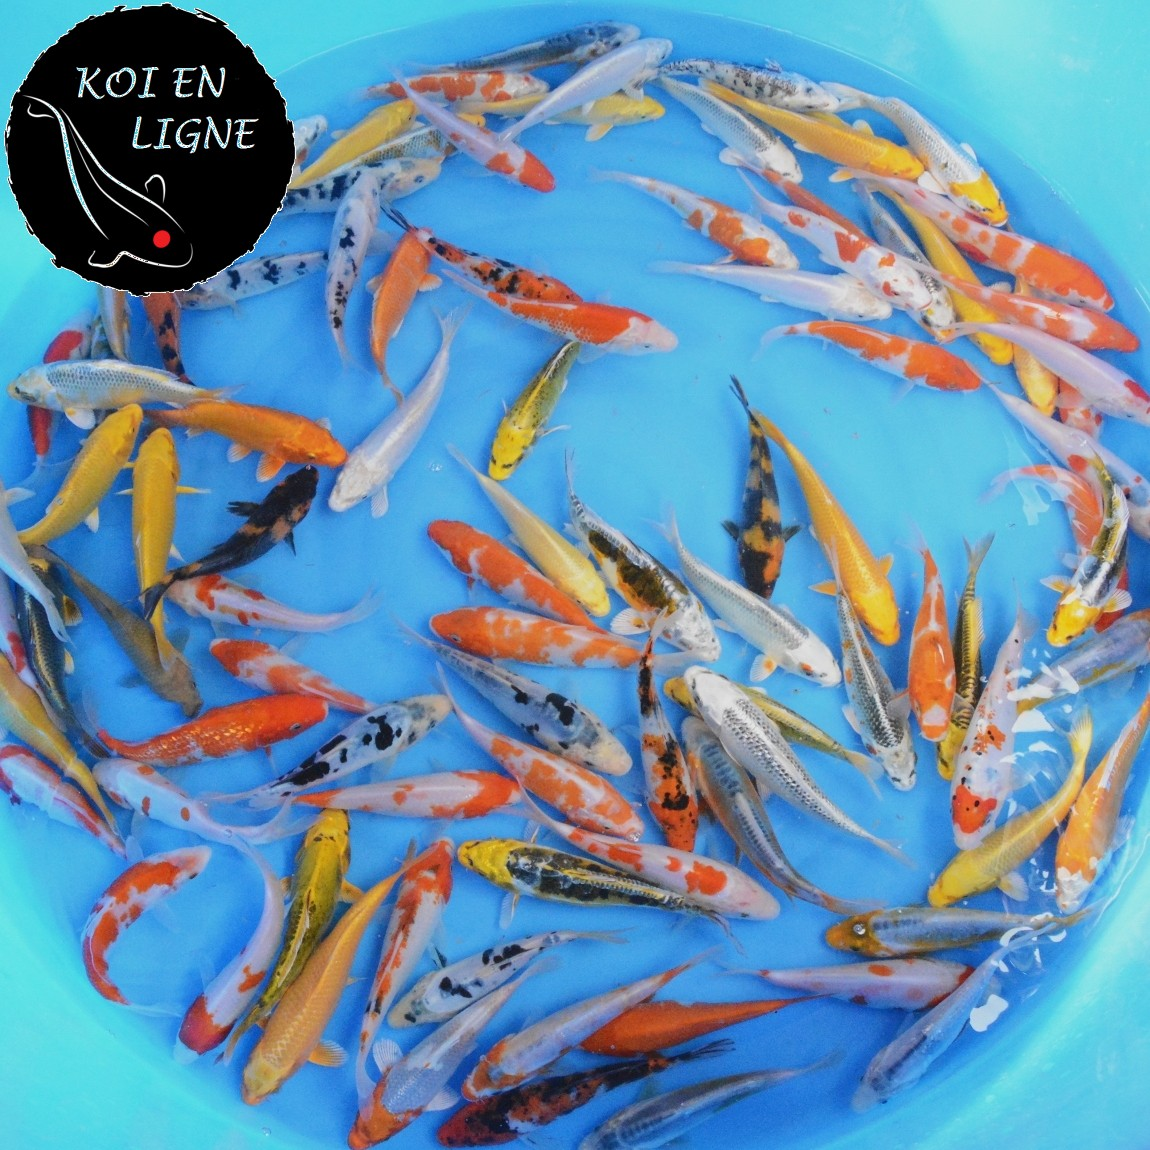 Mix ko premium 12 14cm lots de carpes koi koi france for Carpe koi en ligne